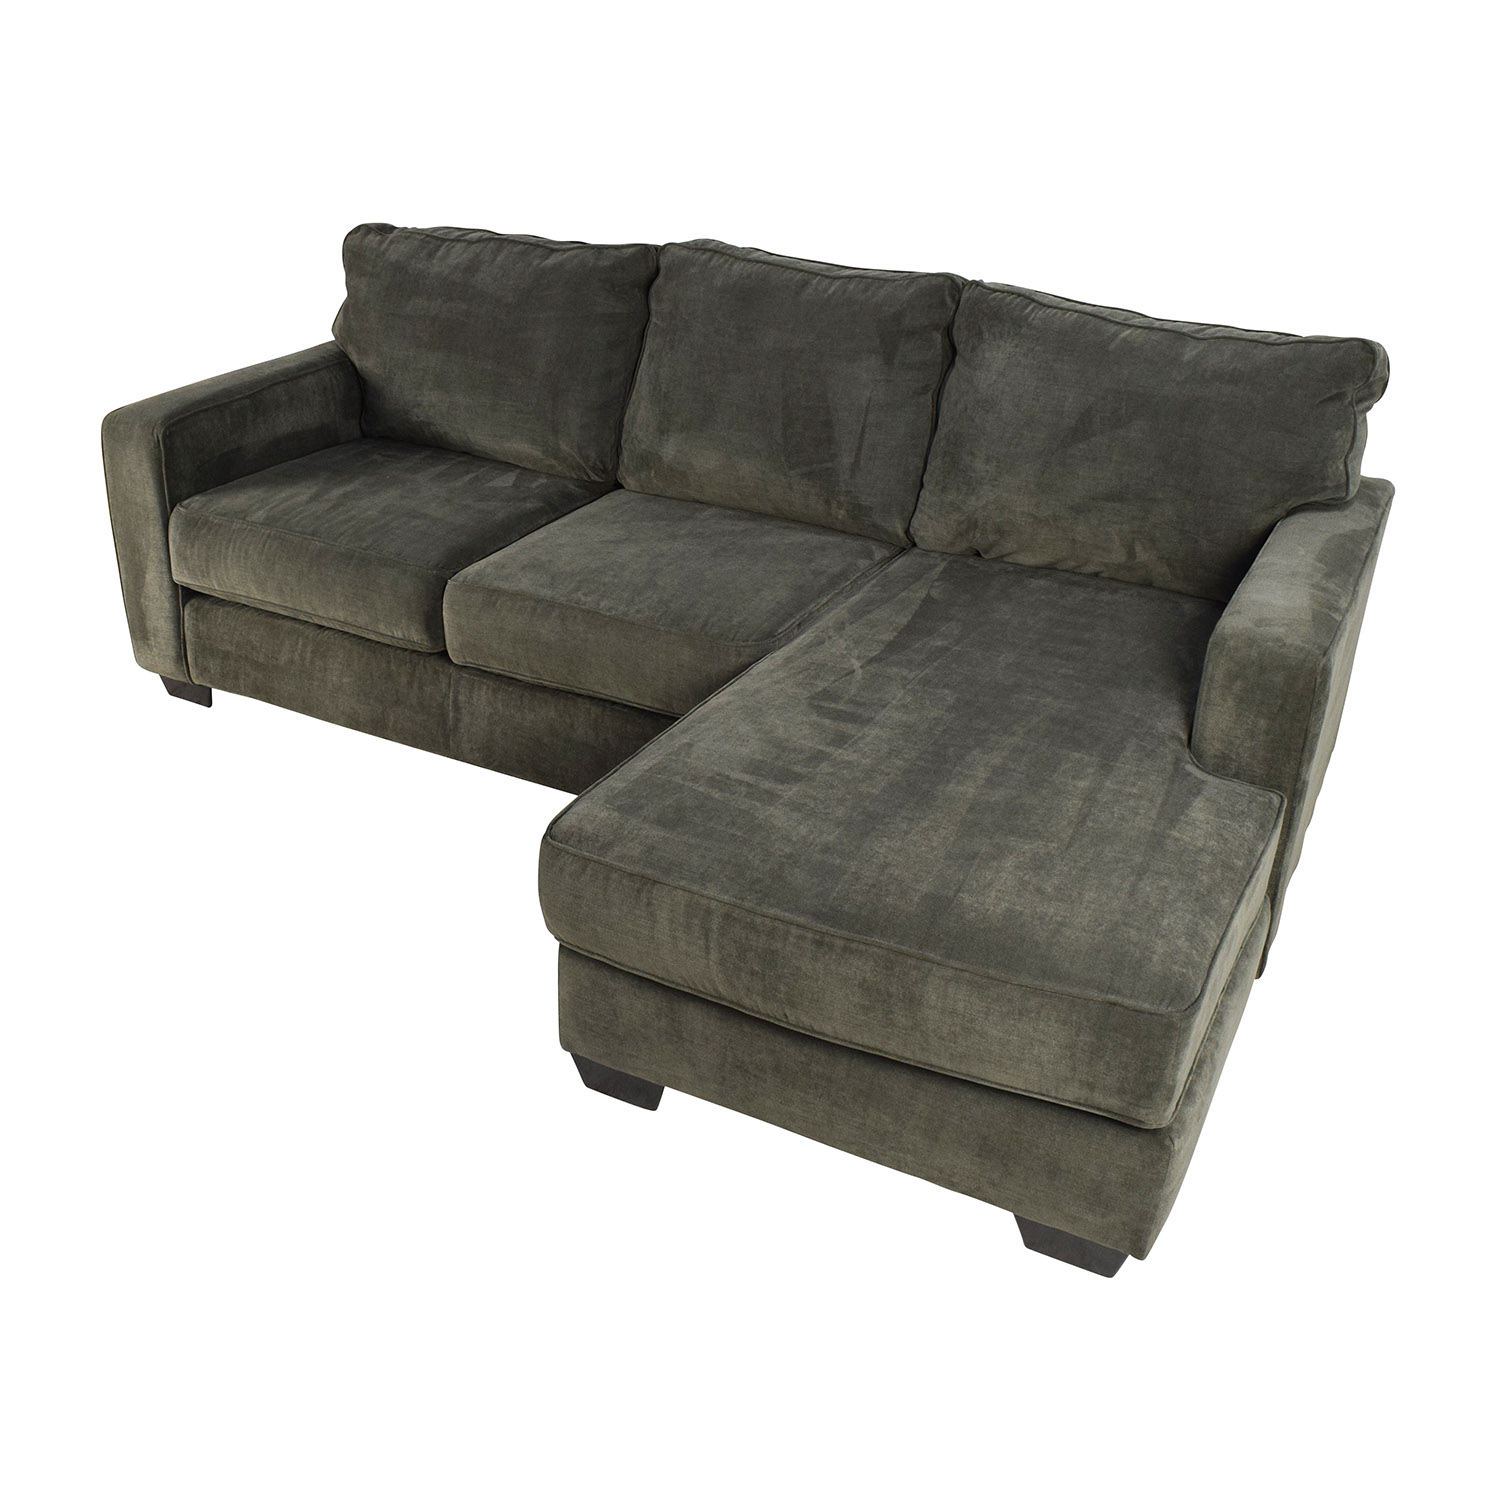 ... Jennifer Convertibles Jennifer Convertibles Sectional Sofa Sofas ...  sc 1 st  Furnishare : jennifer convertibles sectional sofas - Sectionals, Sofas & Couches